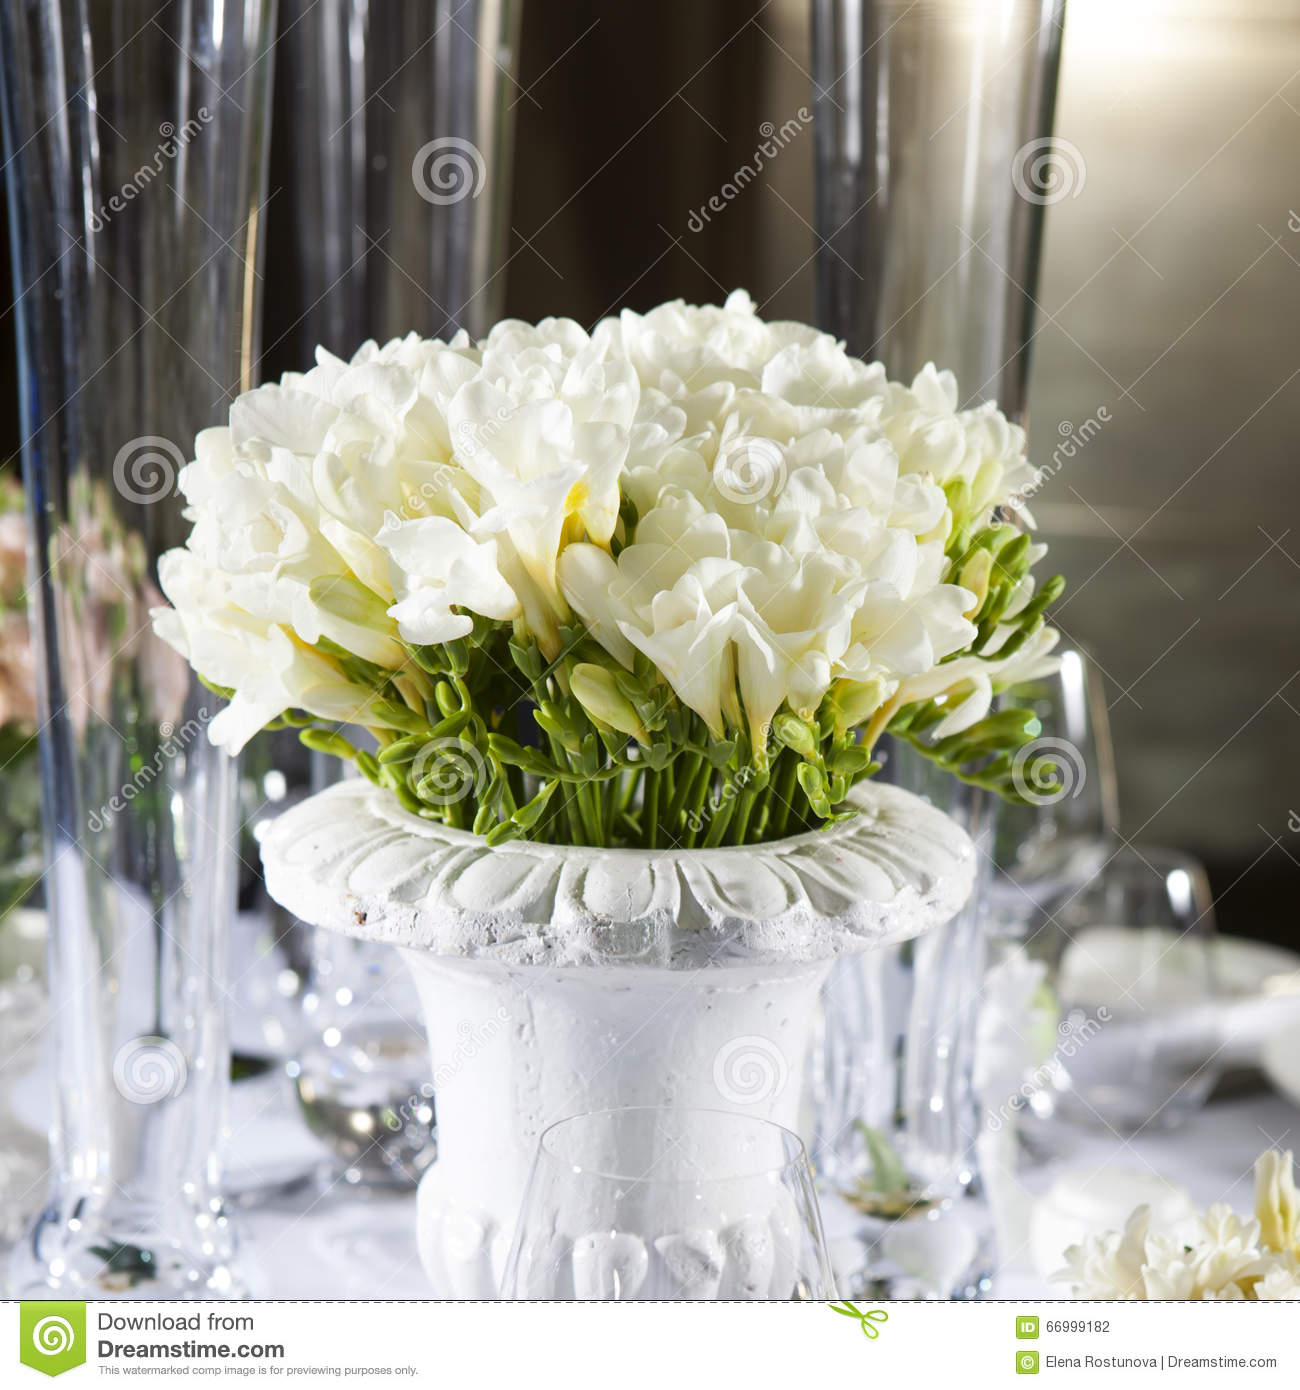 Decoration of wedding table bouquet of white flower of anemone decoration of wedding table bouquet of white flowers of anemone izmirmasajfo